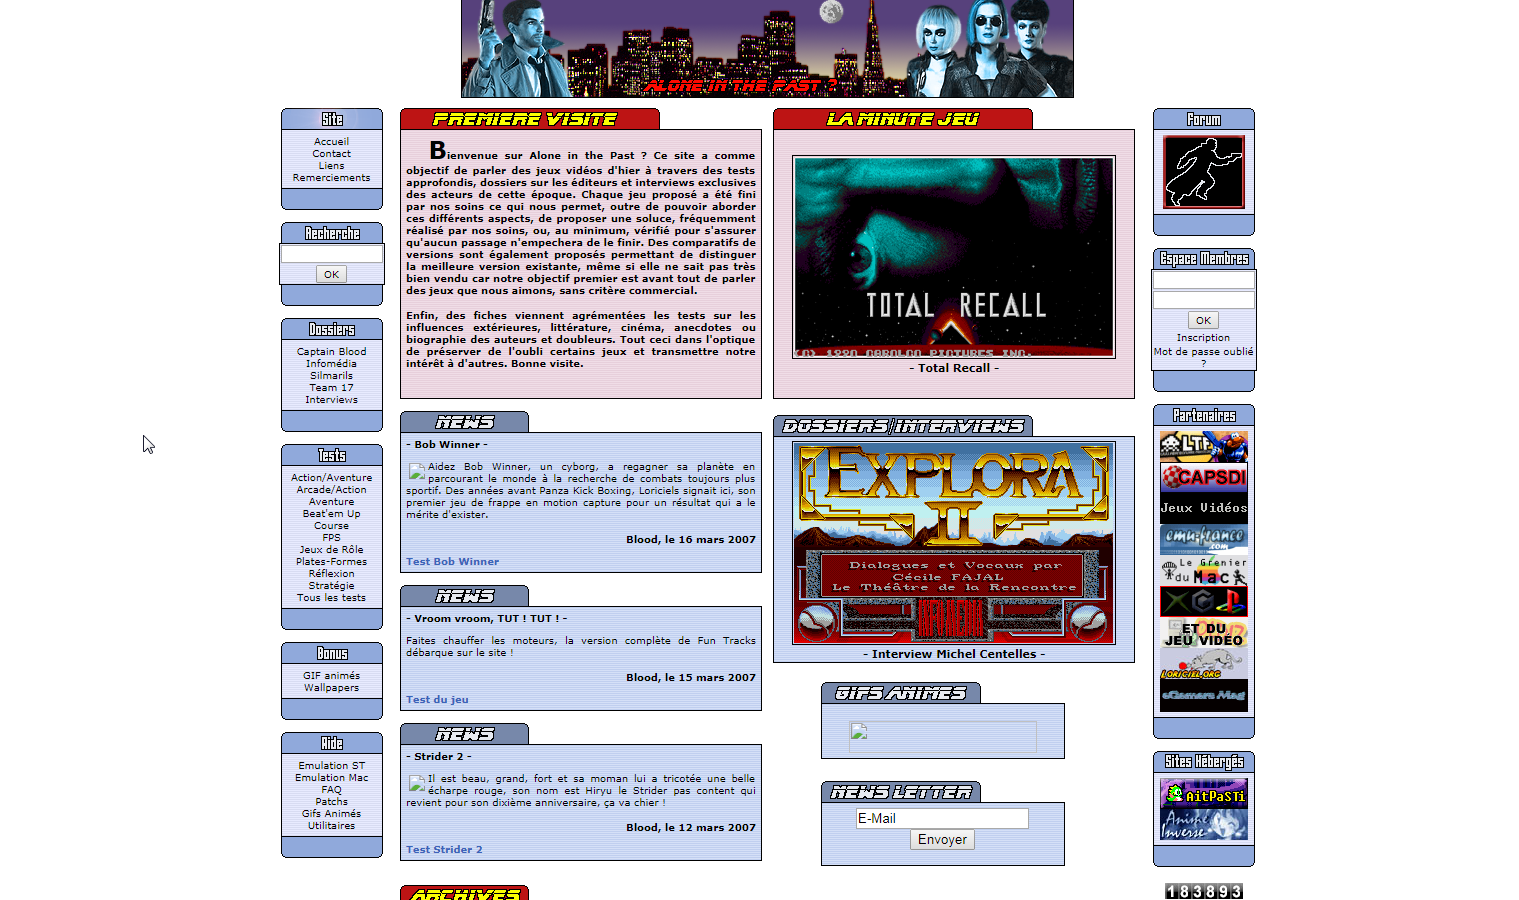 Screenshot of website Alone in the Past